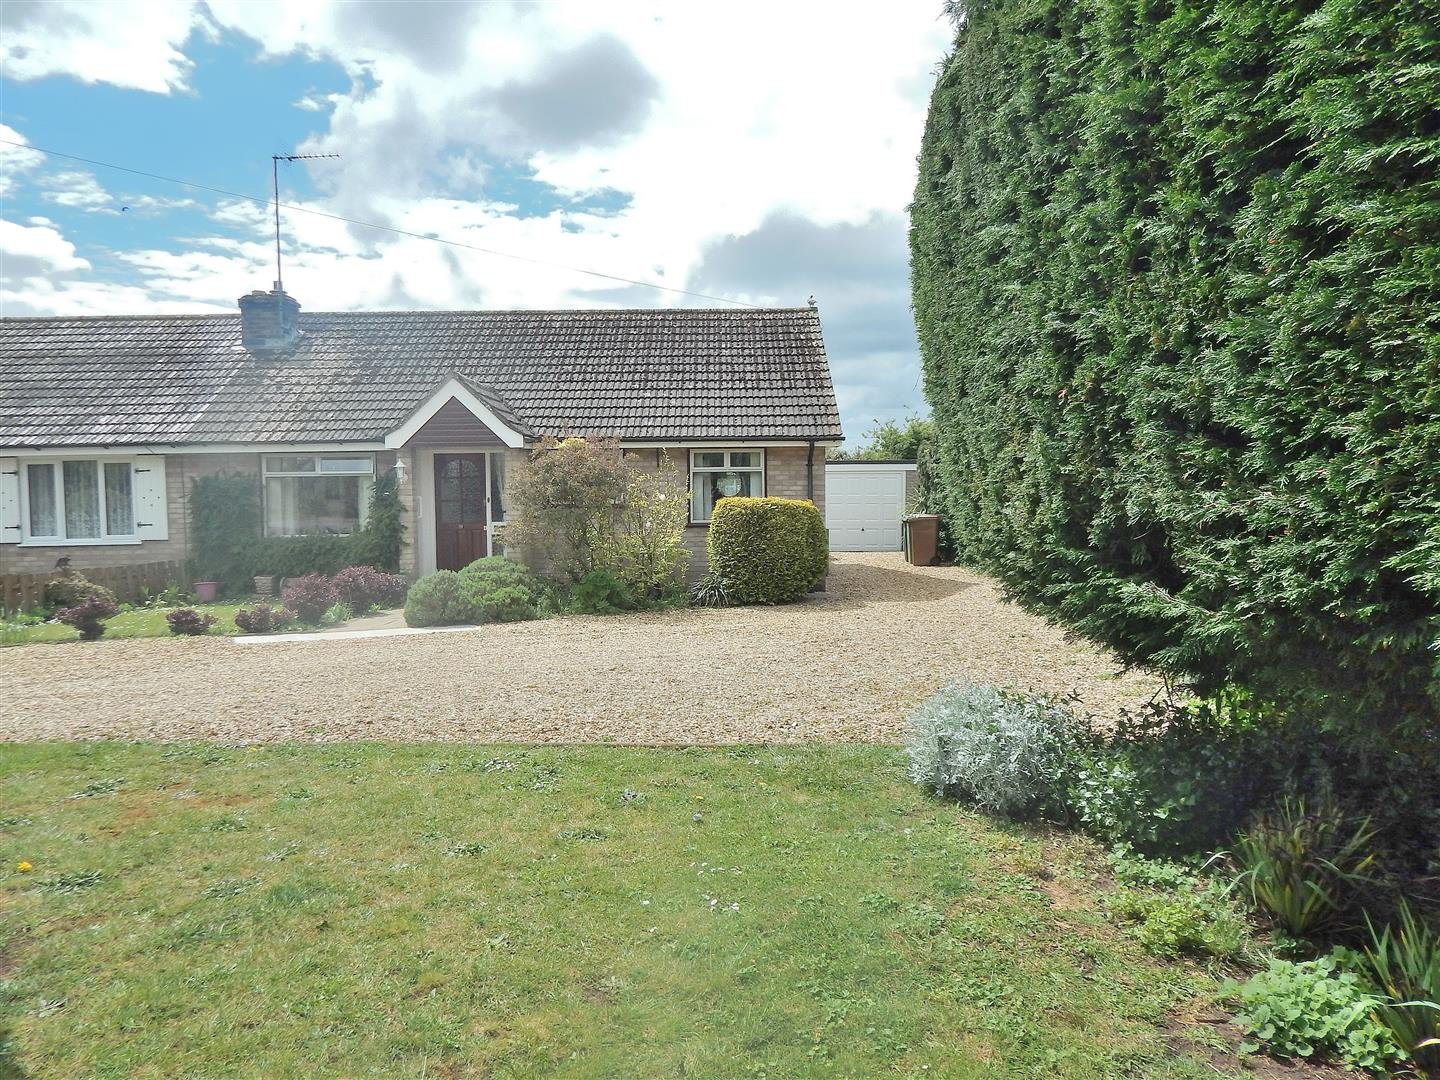 2 bed semi-detached bungalow for sale in Pell Road, King's Lynn, PE31